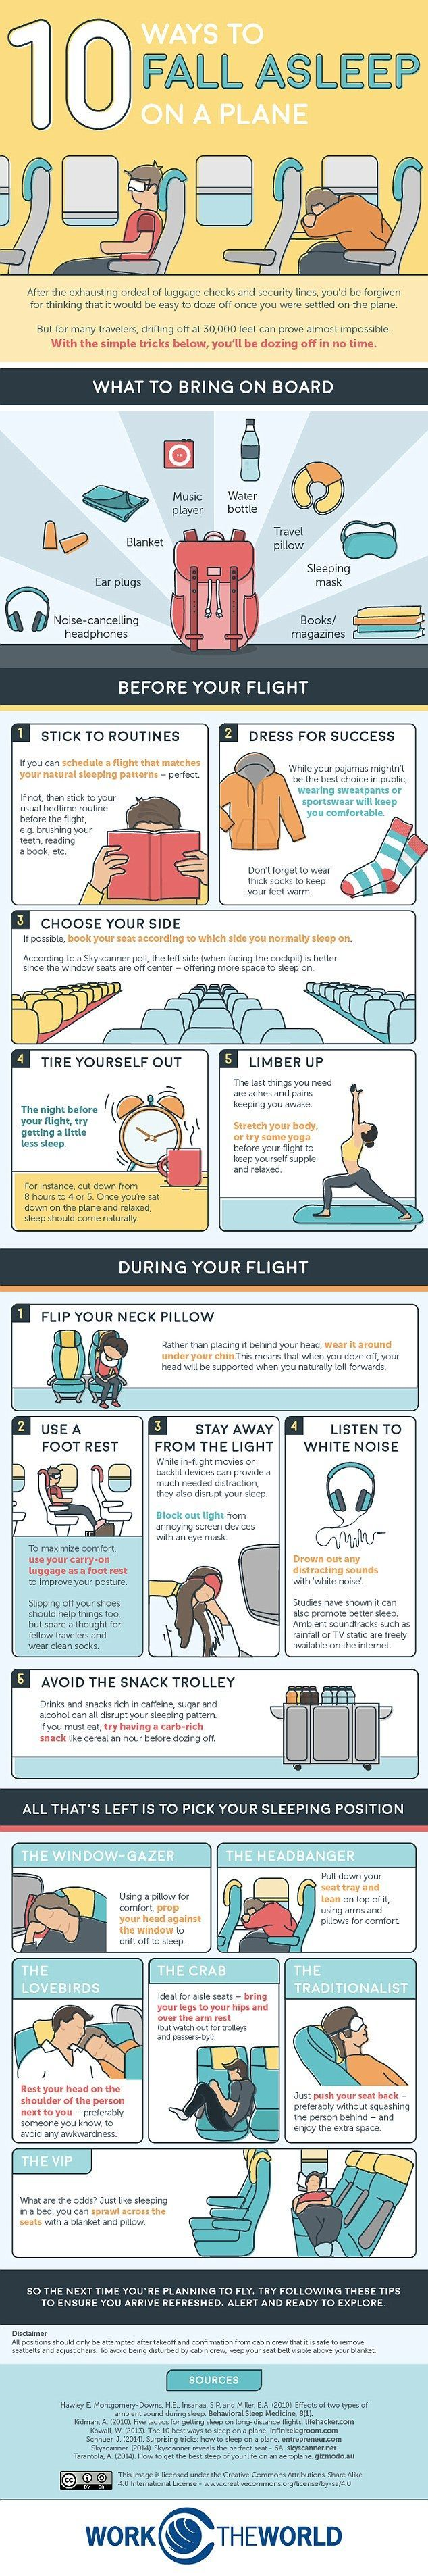 How To Fall Asleep On The Plane: The Ultimate Guide  Daily Mail Online